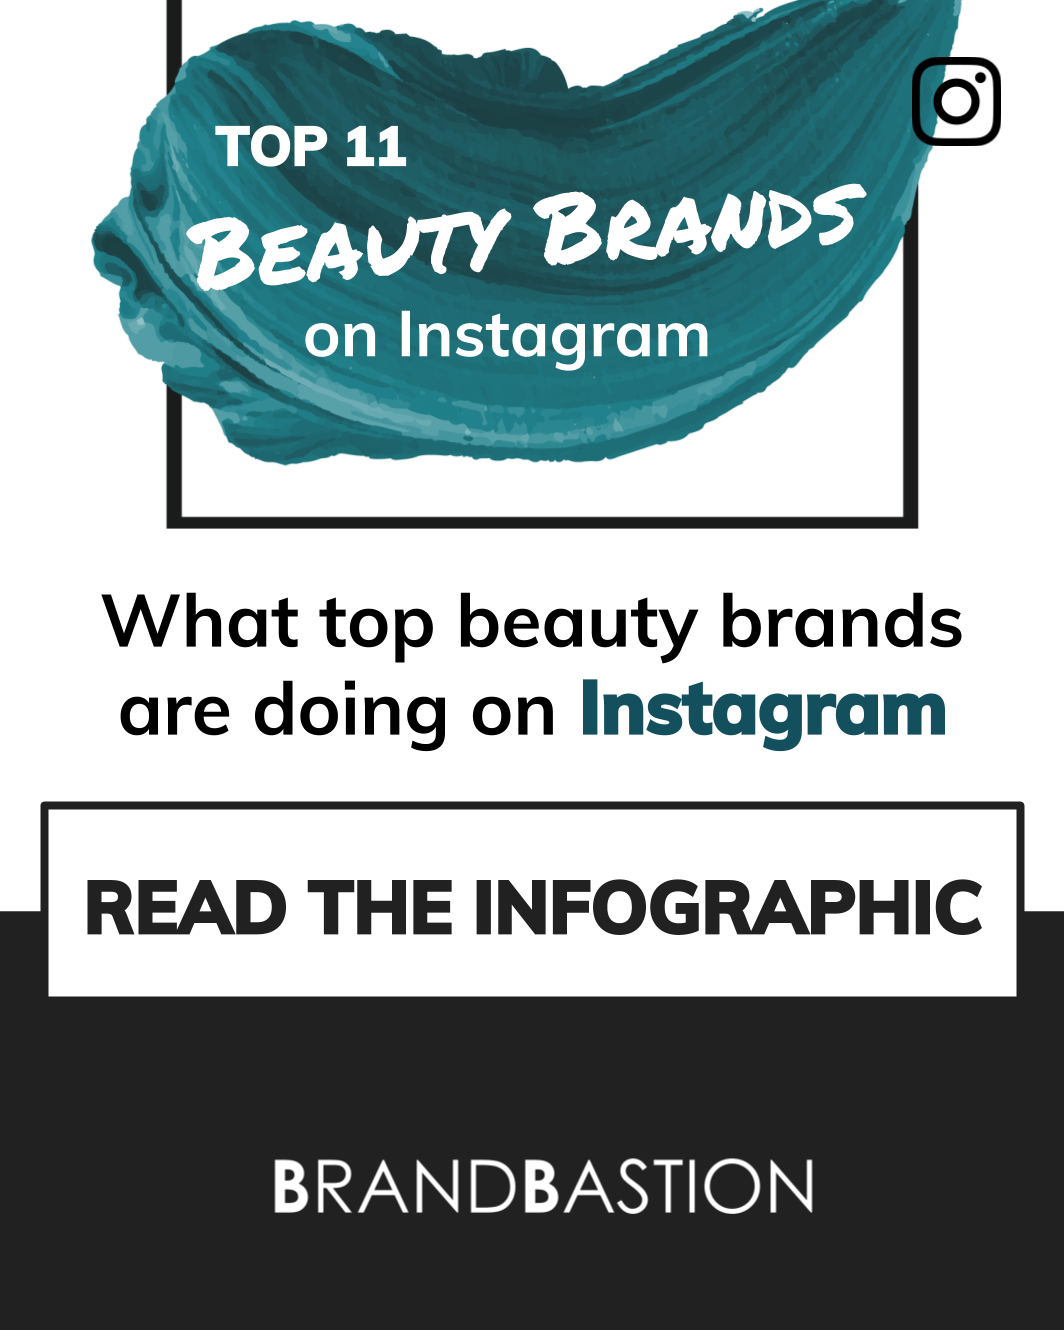 Infographic: Top 11 Beauty Brands on Instagram